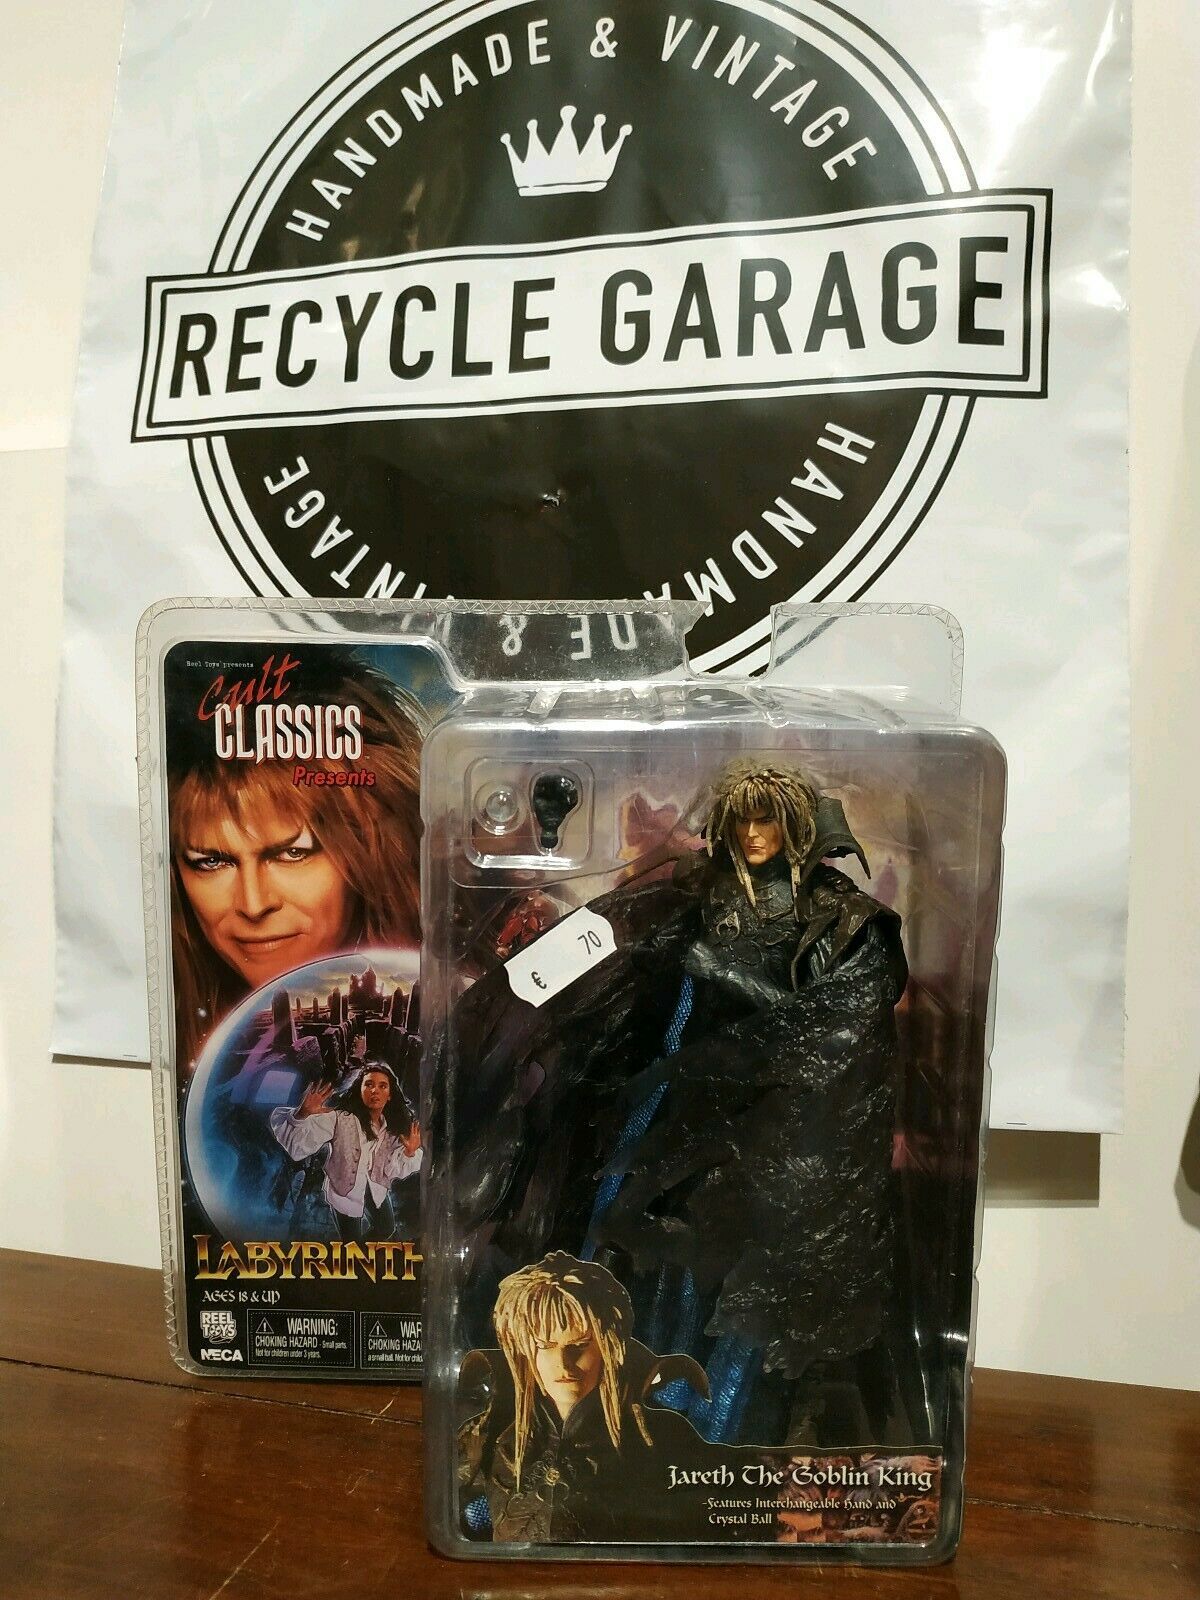 DAVID BOWIE NECA ORIGINAL MEGARARE WITH scatola VINTAGE ROCK POP